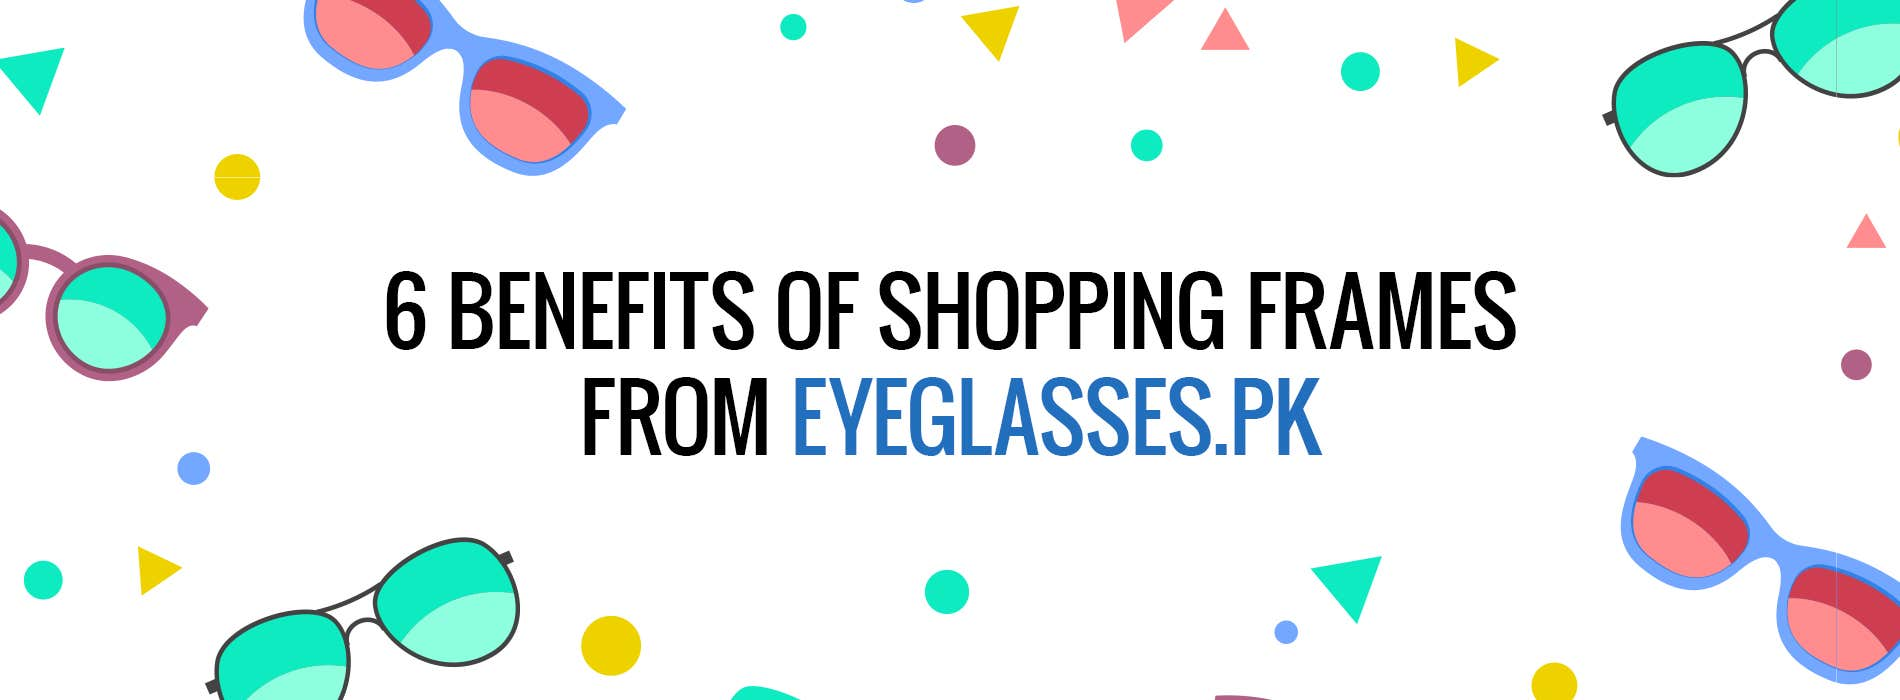 6 Benefits of Shopping Frames From Eyeglasses PK